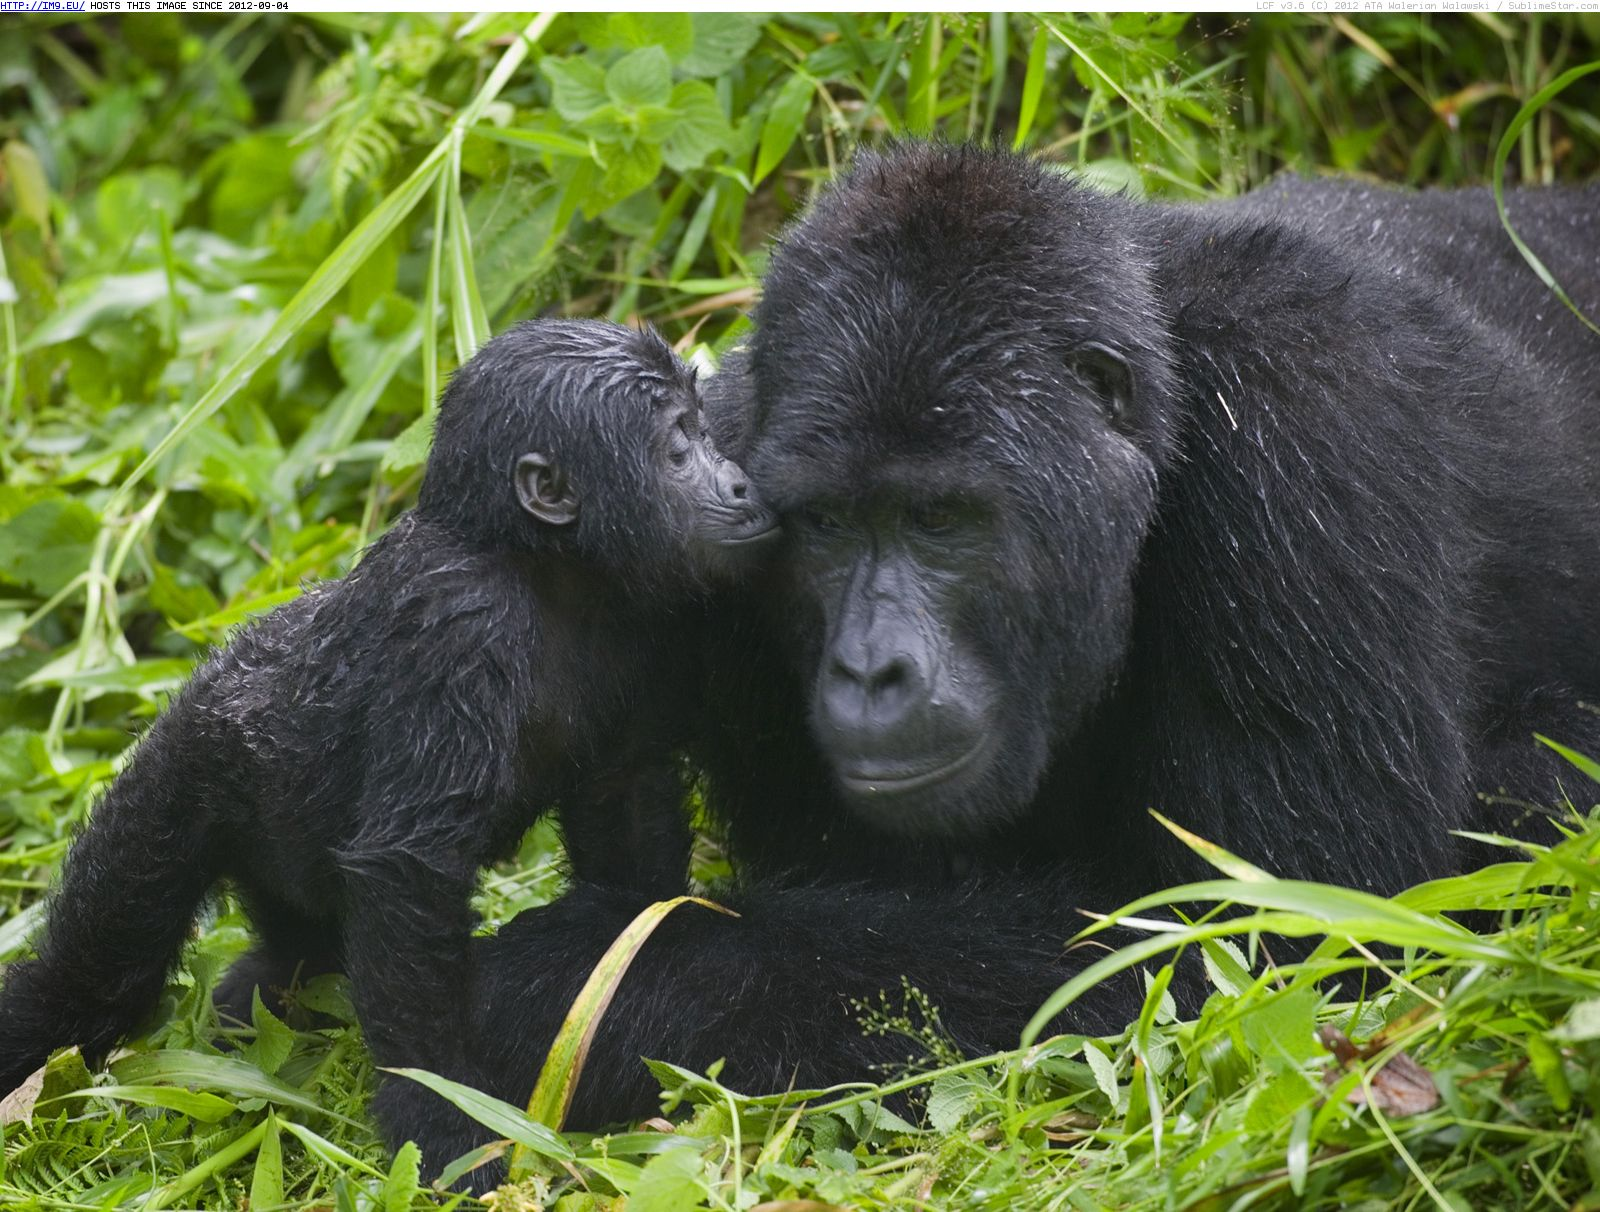 A mother mountain gorilla with baby